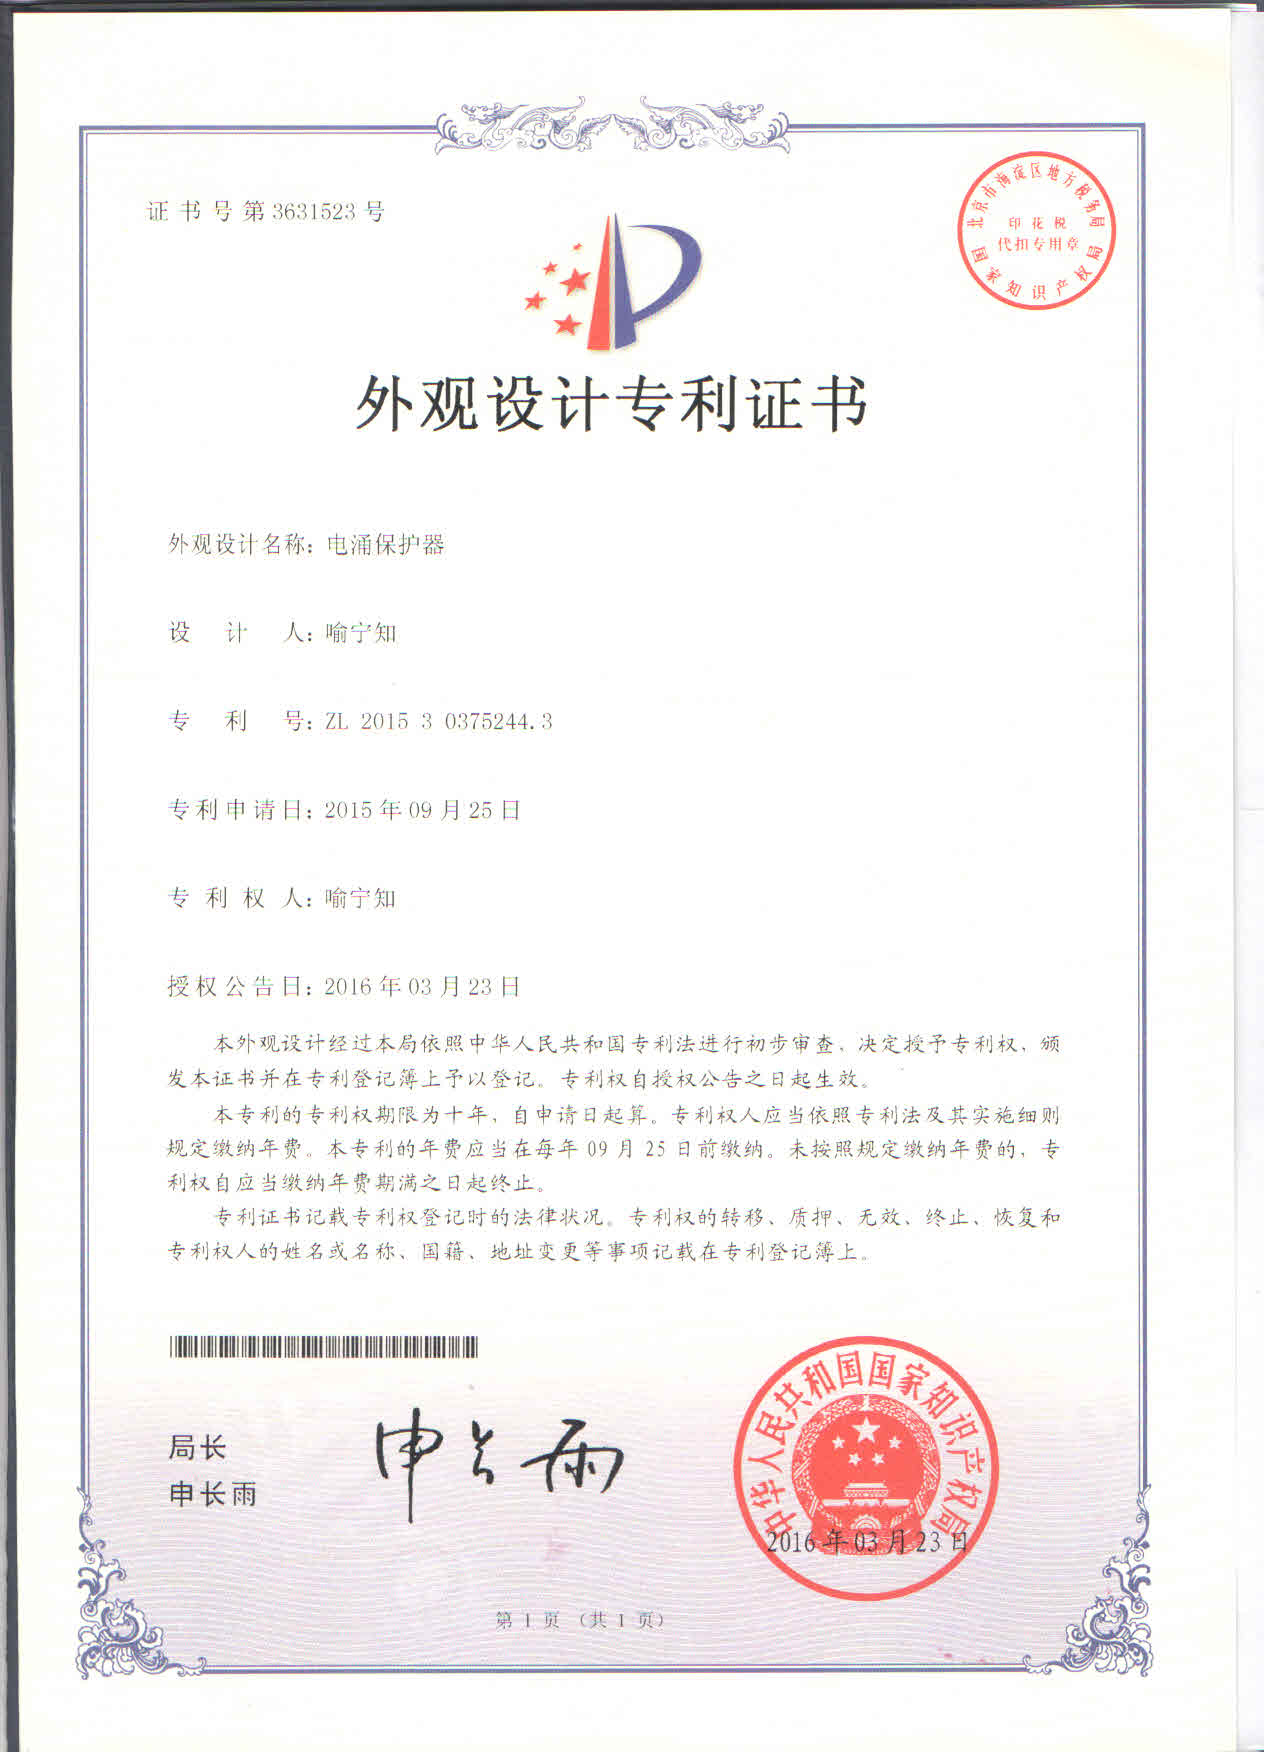 FATECH Patent for apperance designing of Class C SPD